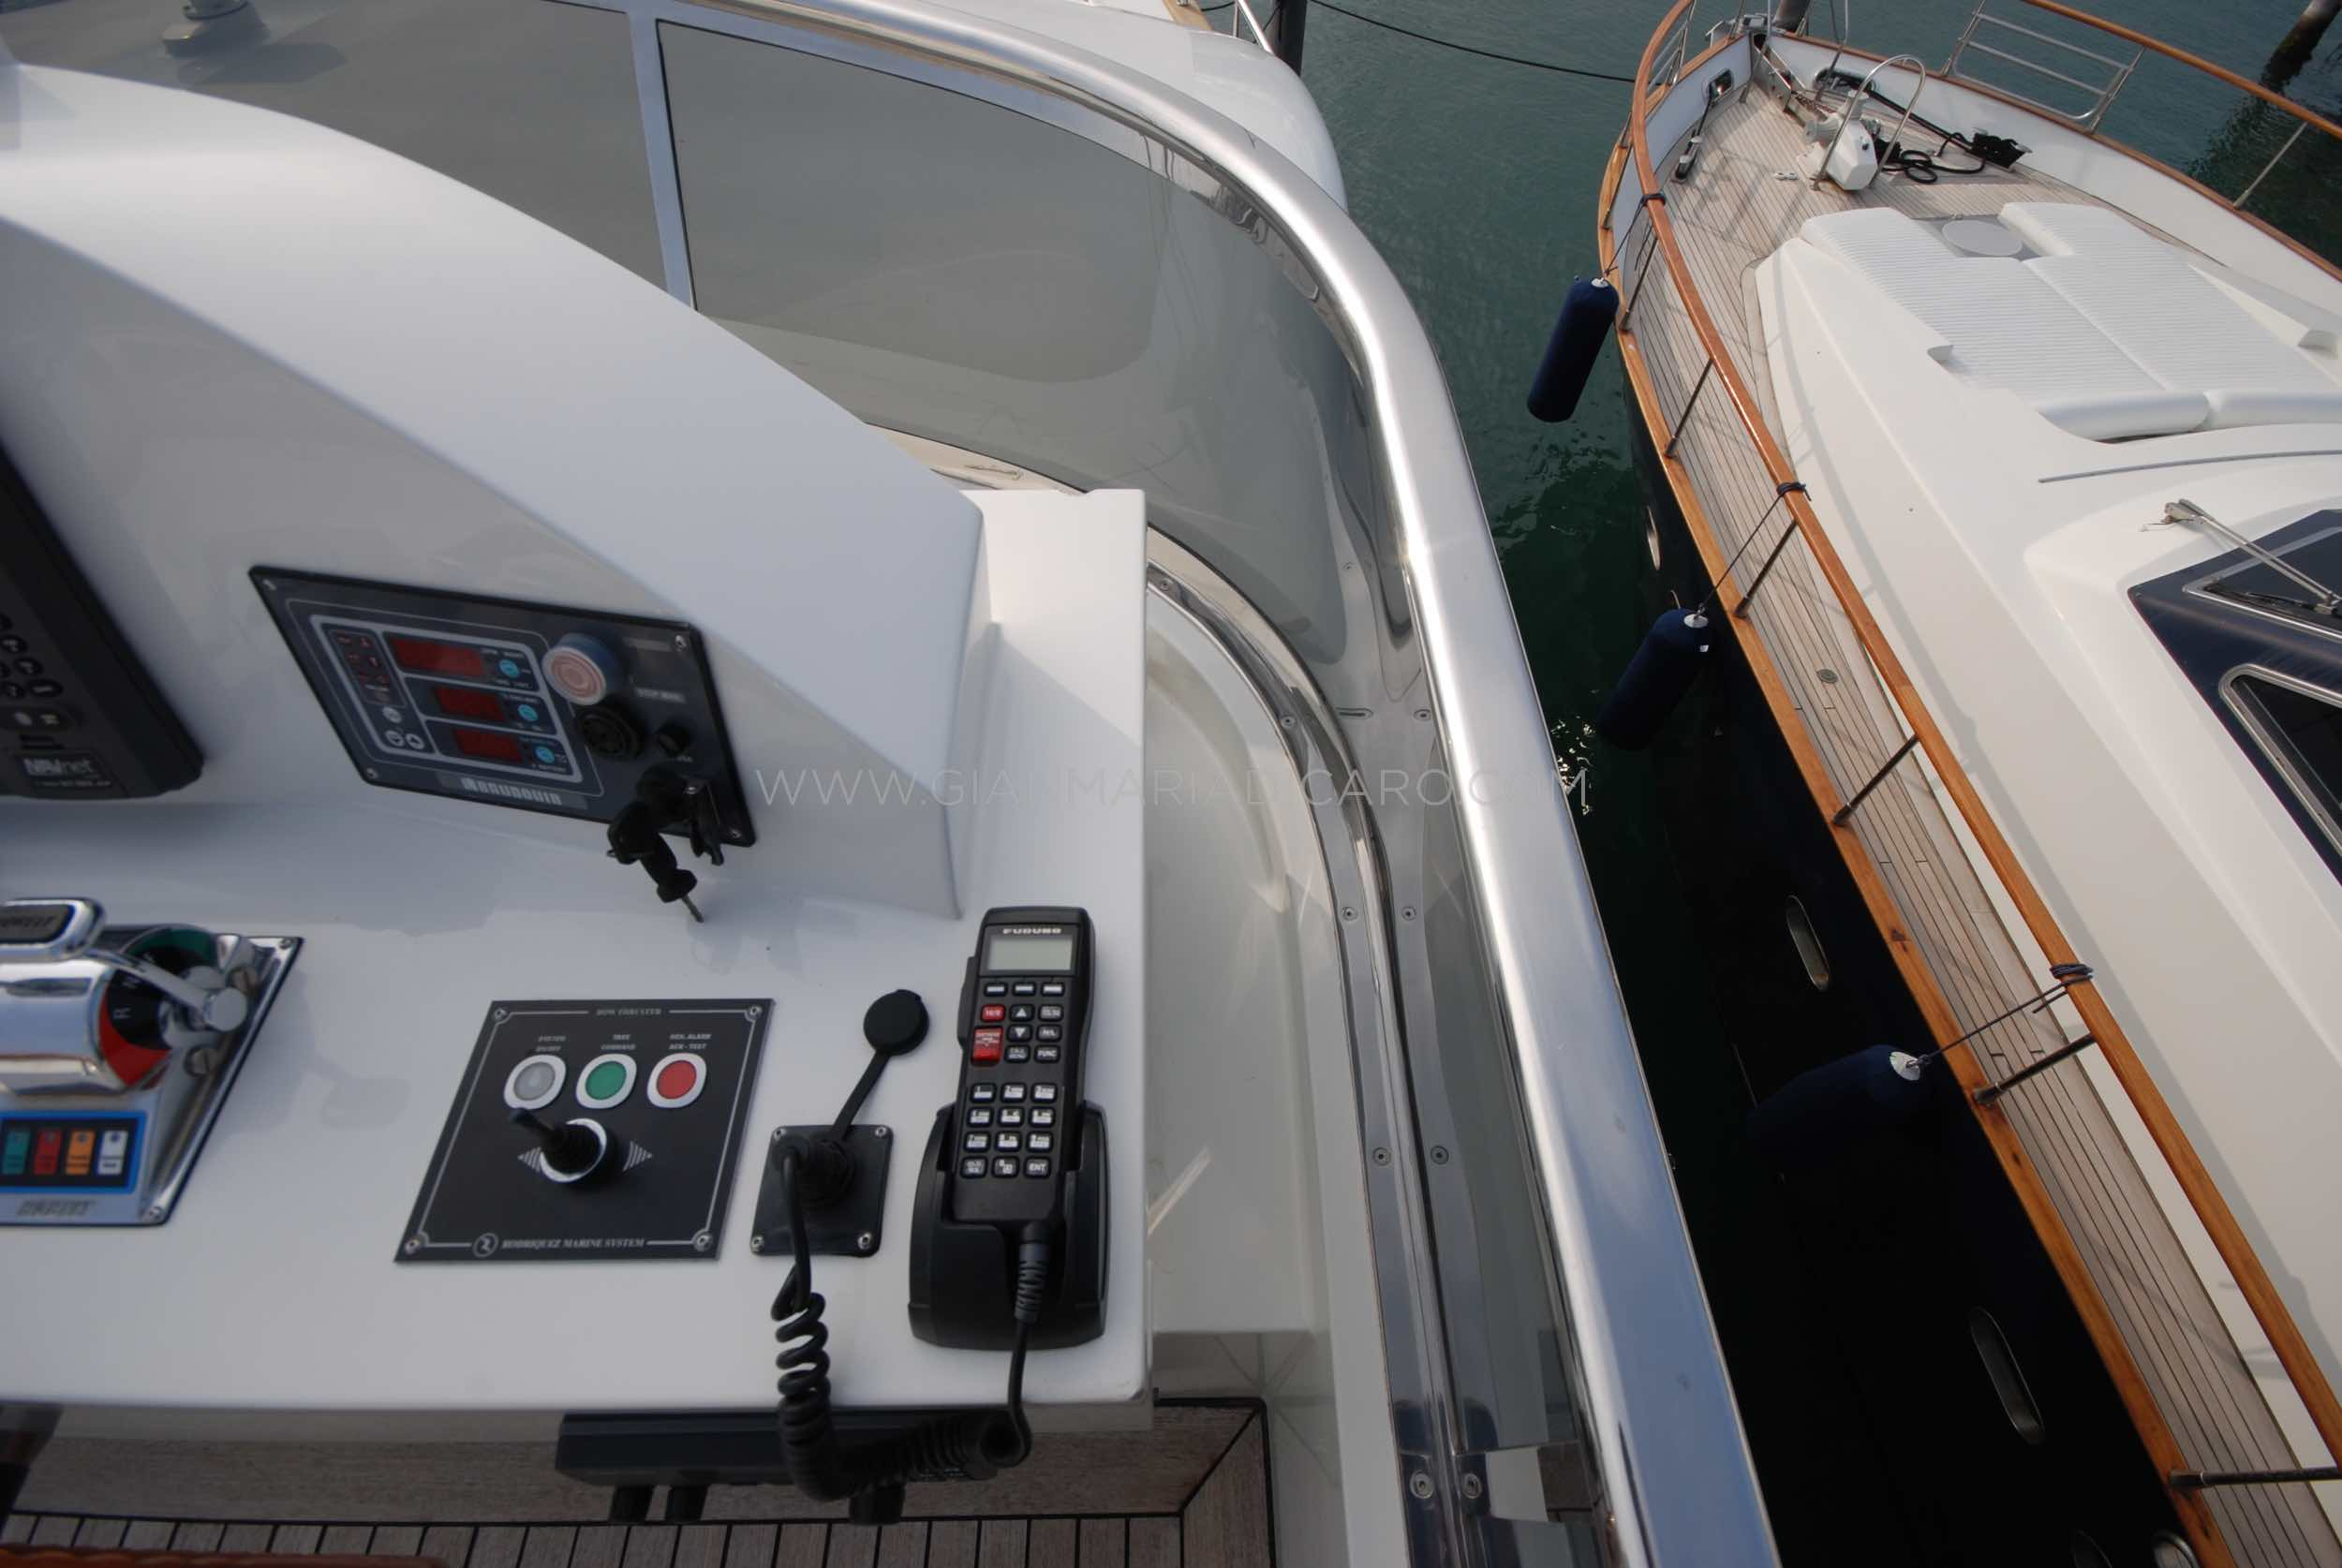 emys-yacht-22-unica-for-sale-96.jpg